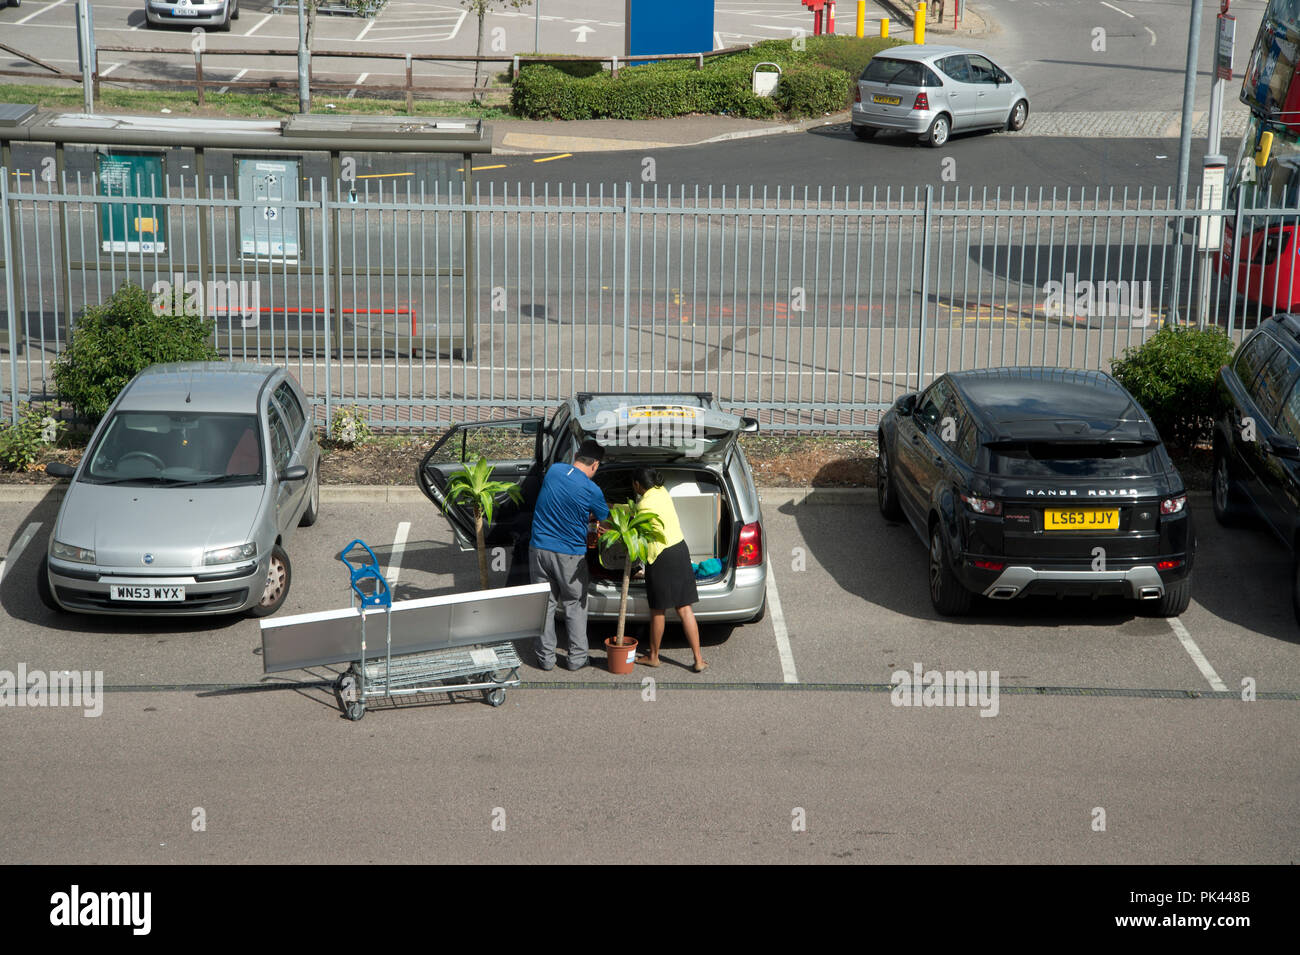 Ikea , Edmonton, North London. Couple trying to fit purchases into a car boot. - Stock Image